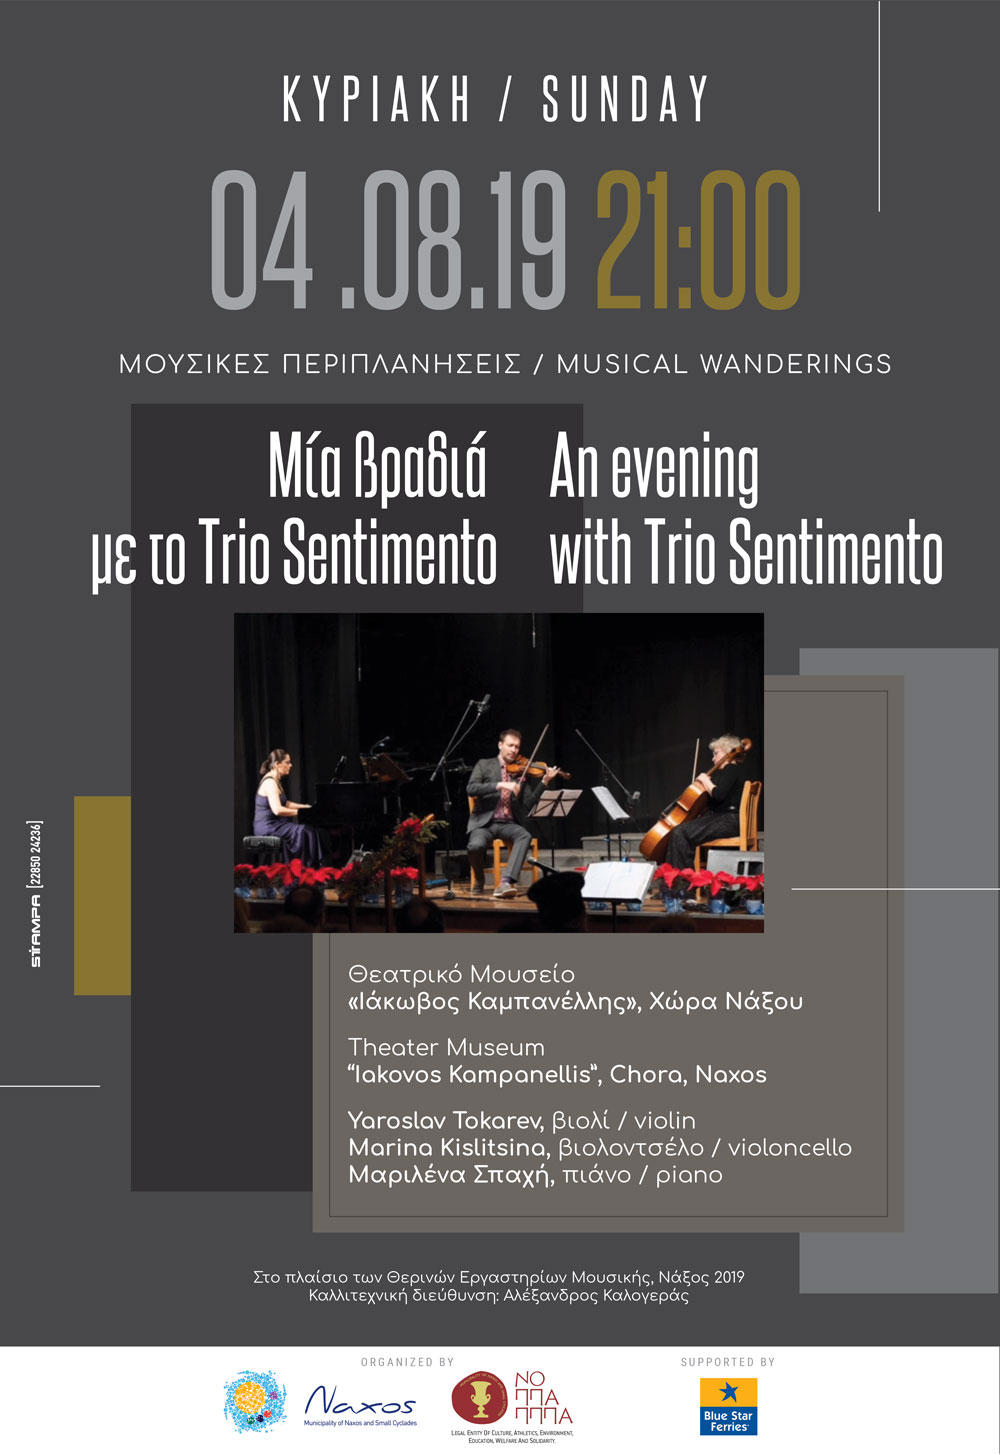 «Music wanderings» A night with Trio Sentimento